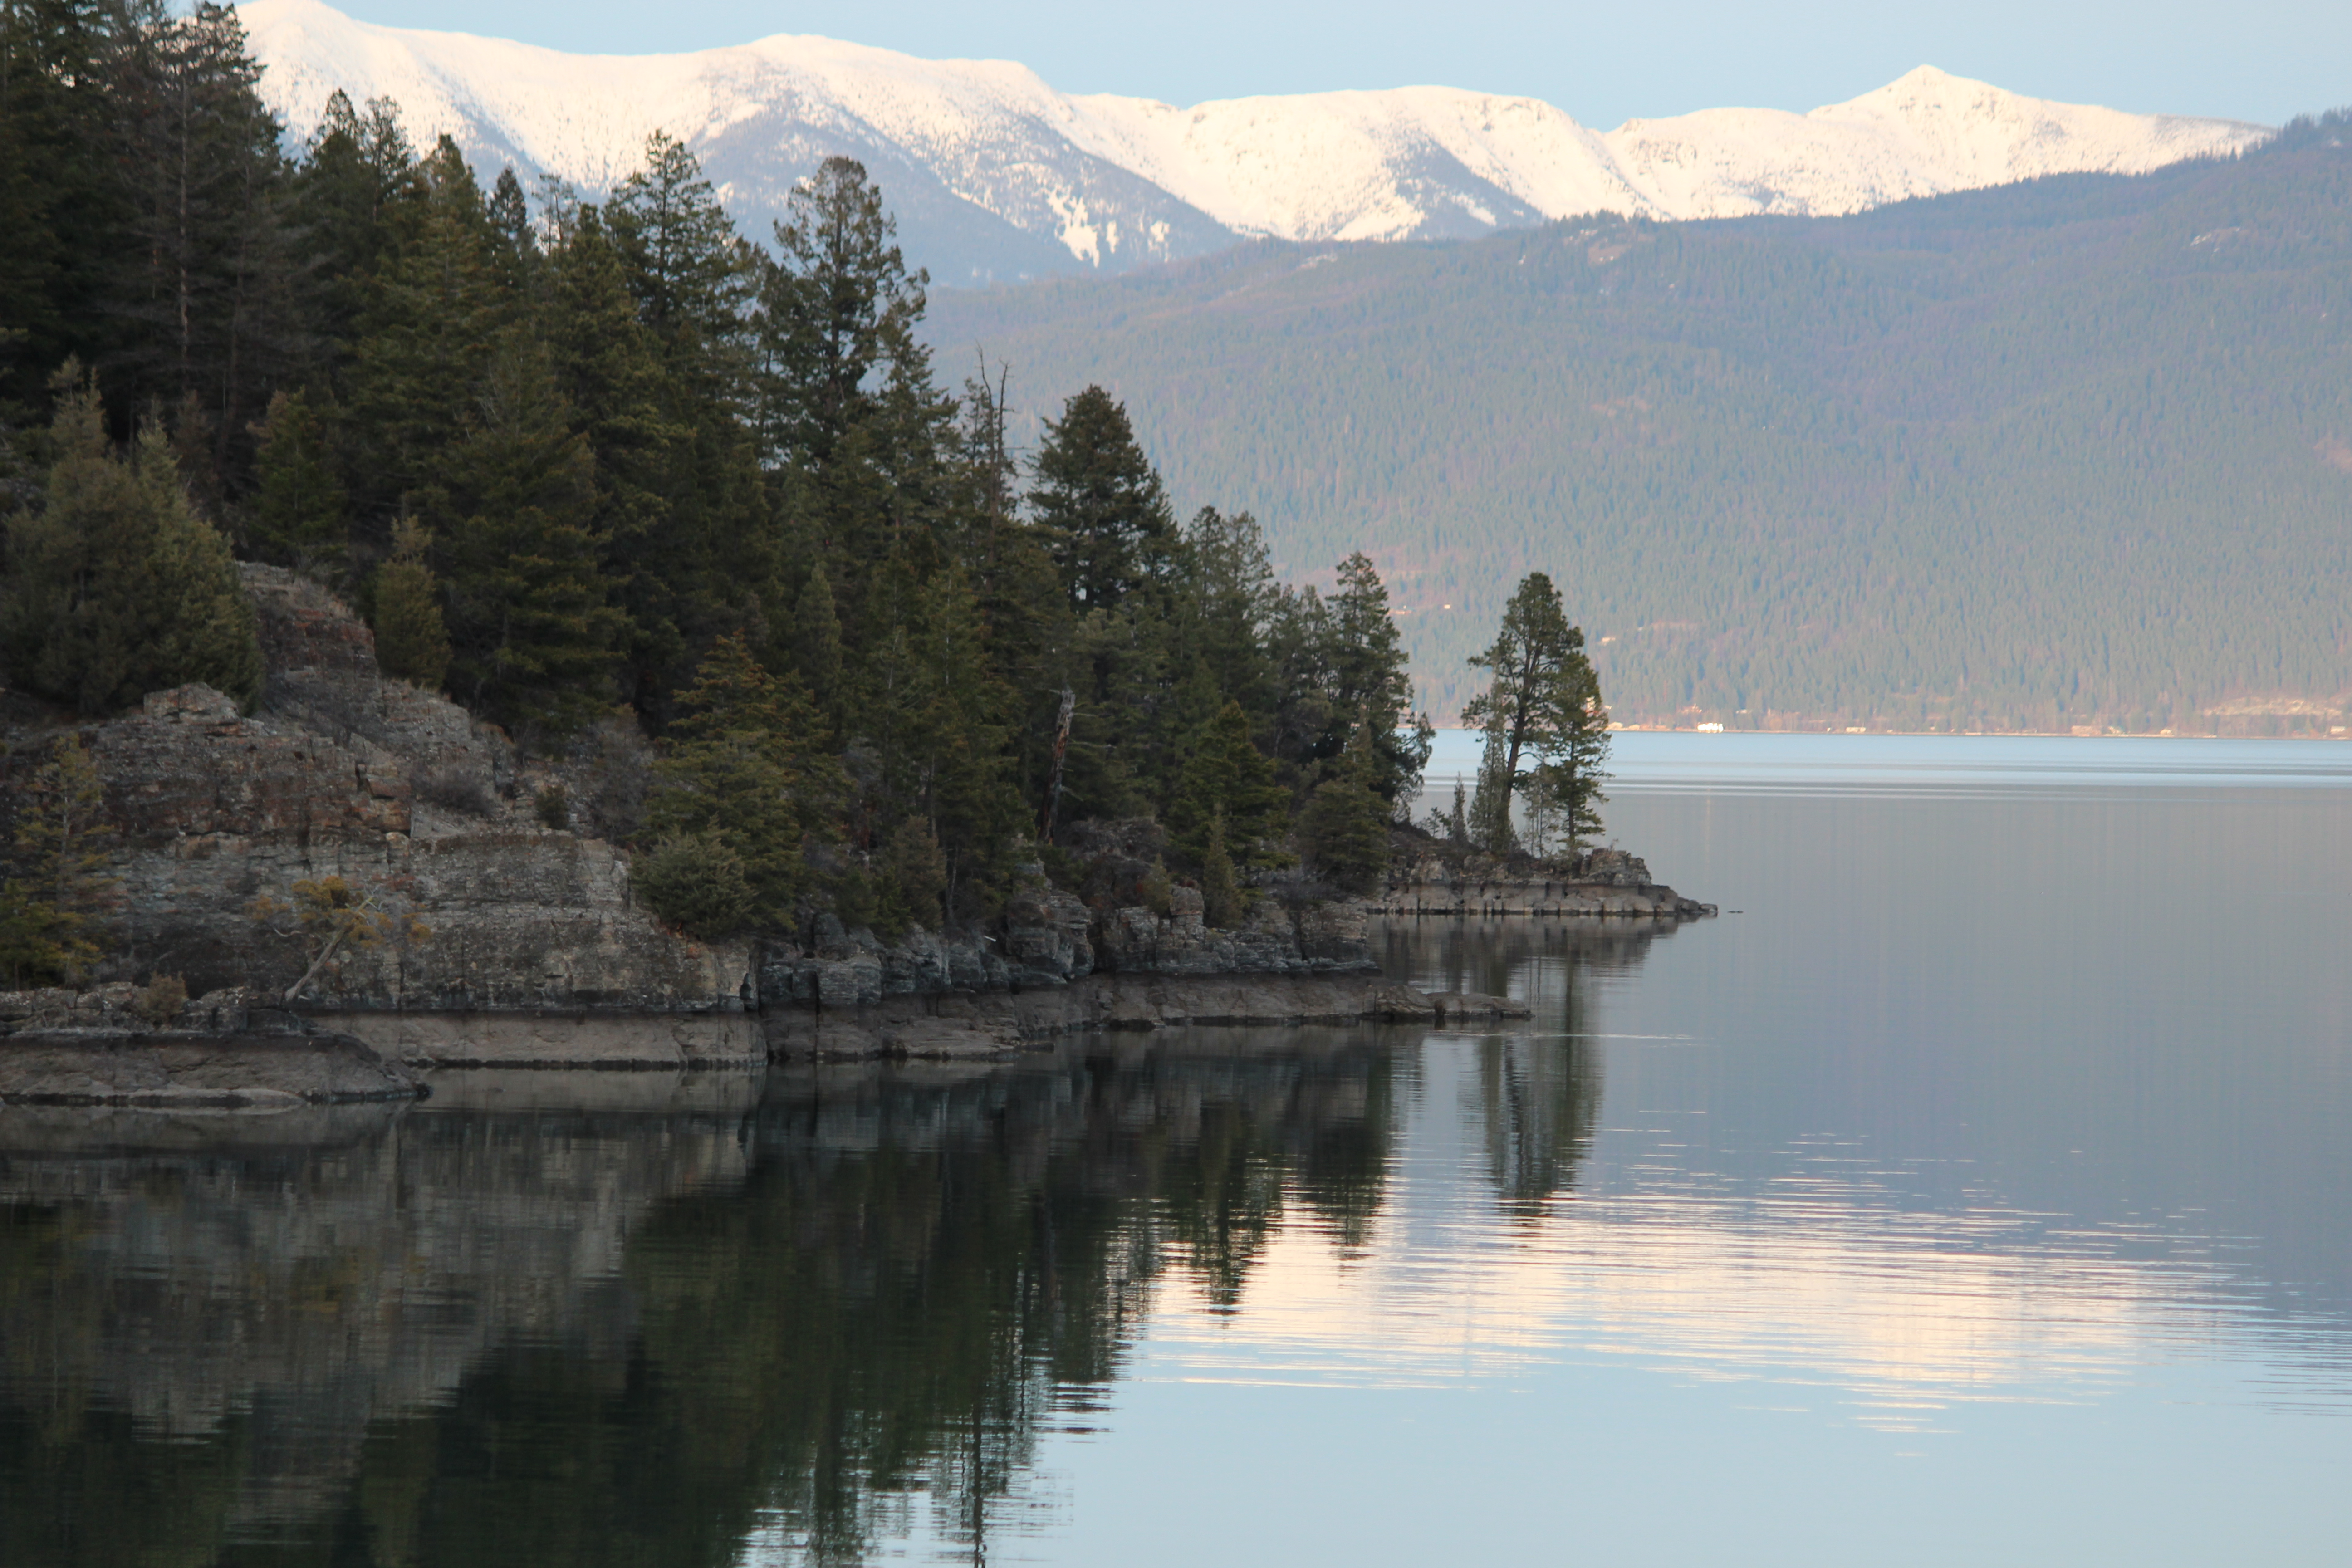 One of the places I go to get quiet-Flathead Lake in Montana. Wouldn't it be great if we could all be clear like this?